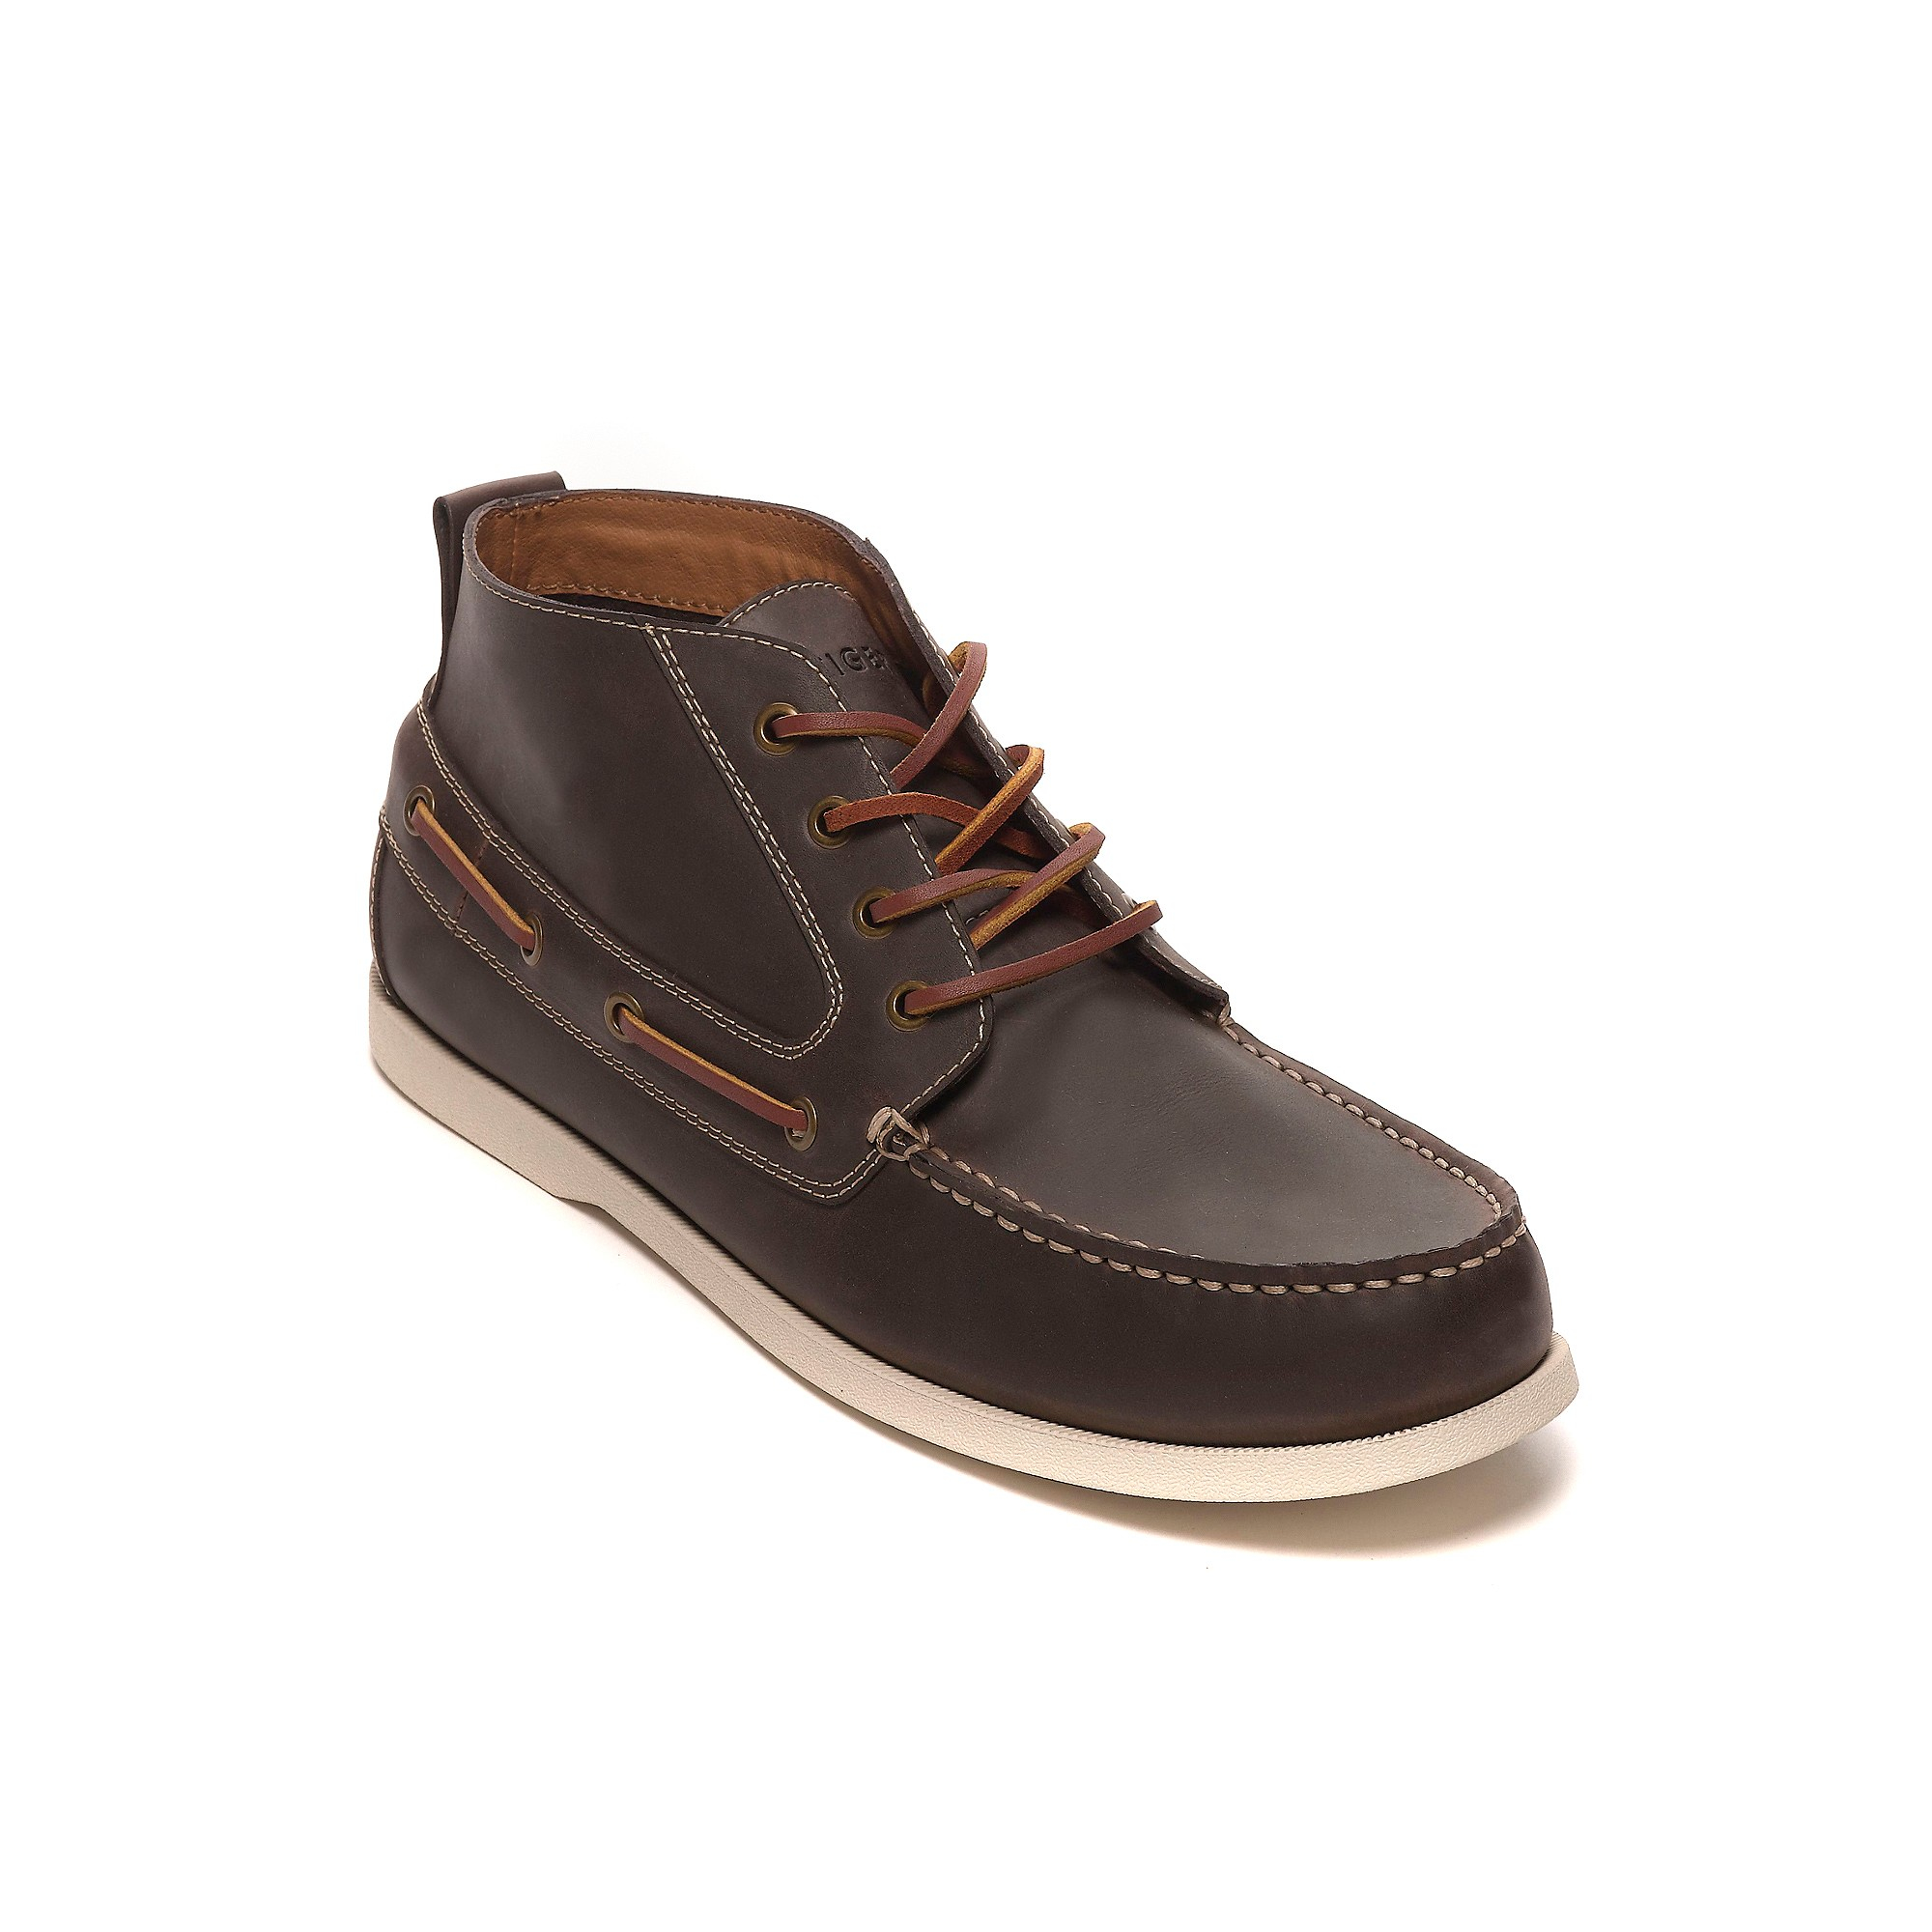 tommy hilfiger topsider boot in brown for men coffee bean lyst. Black Bedroom Furniture Sets. Home Design Ideas